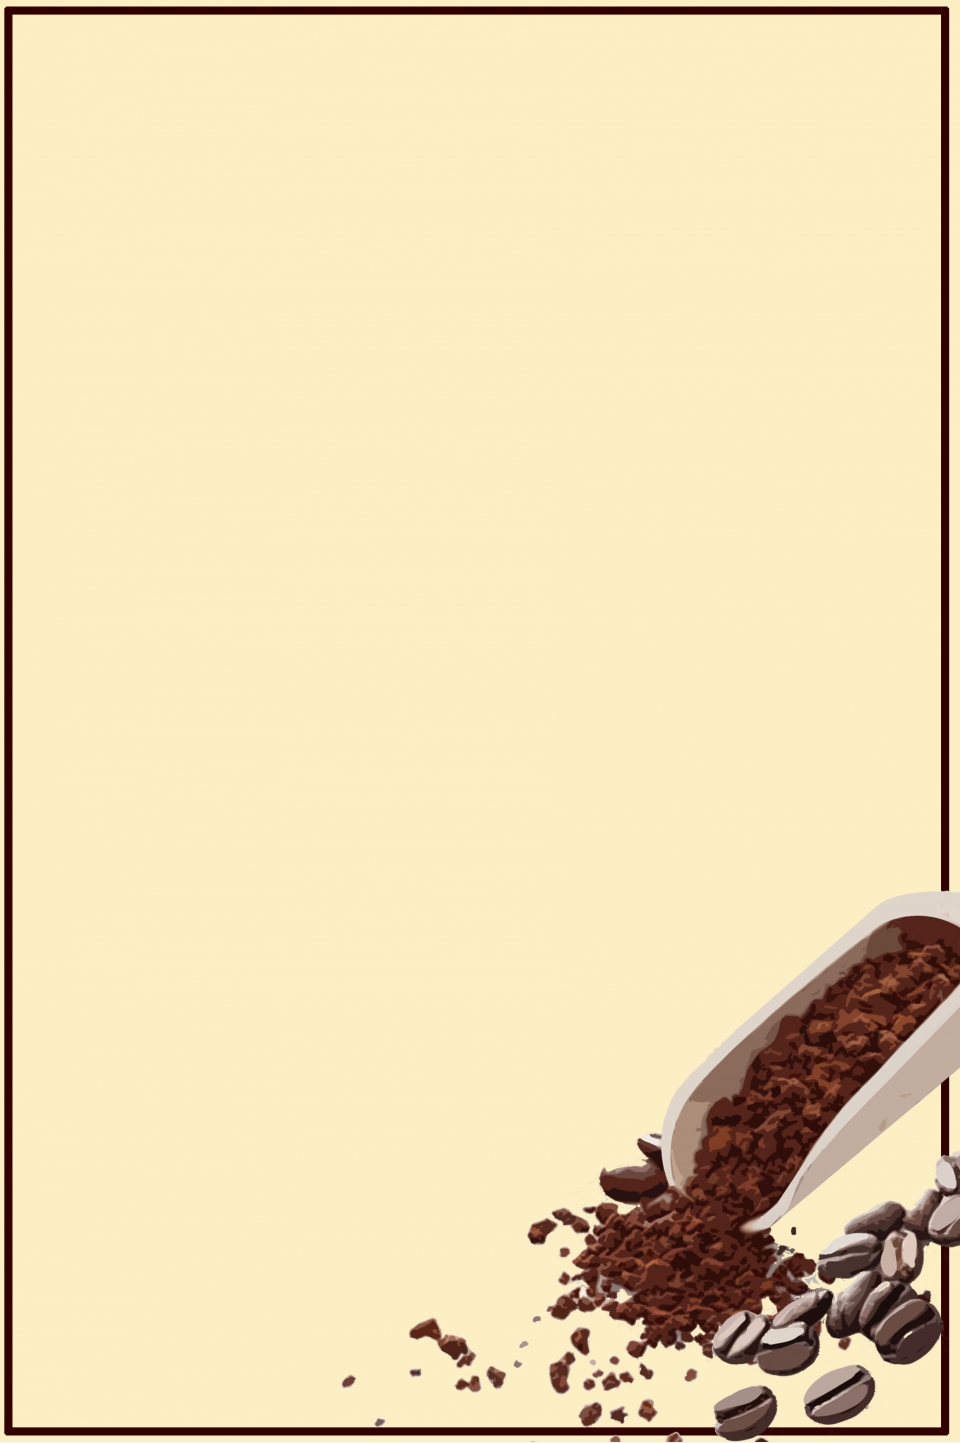 European Coffee Bean Coffee Shop Advertising Exhibition Board Line Drawing Background Material Coffee Background Coffee Bean Background Line Drawing Background Background Image For Free Download